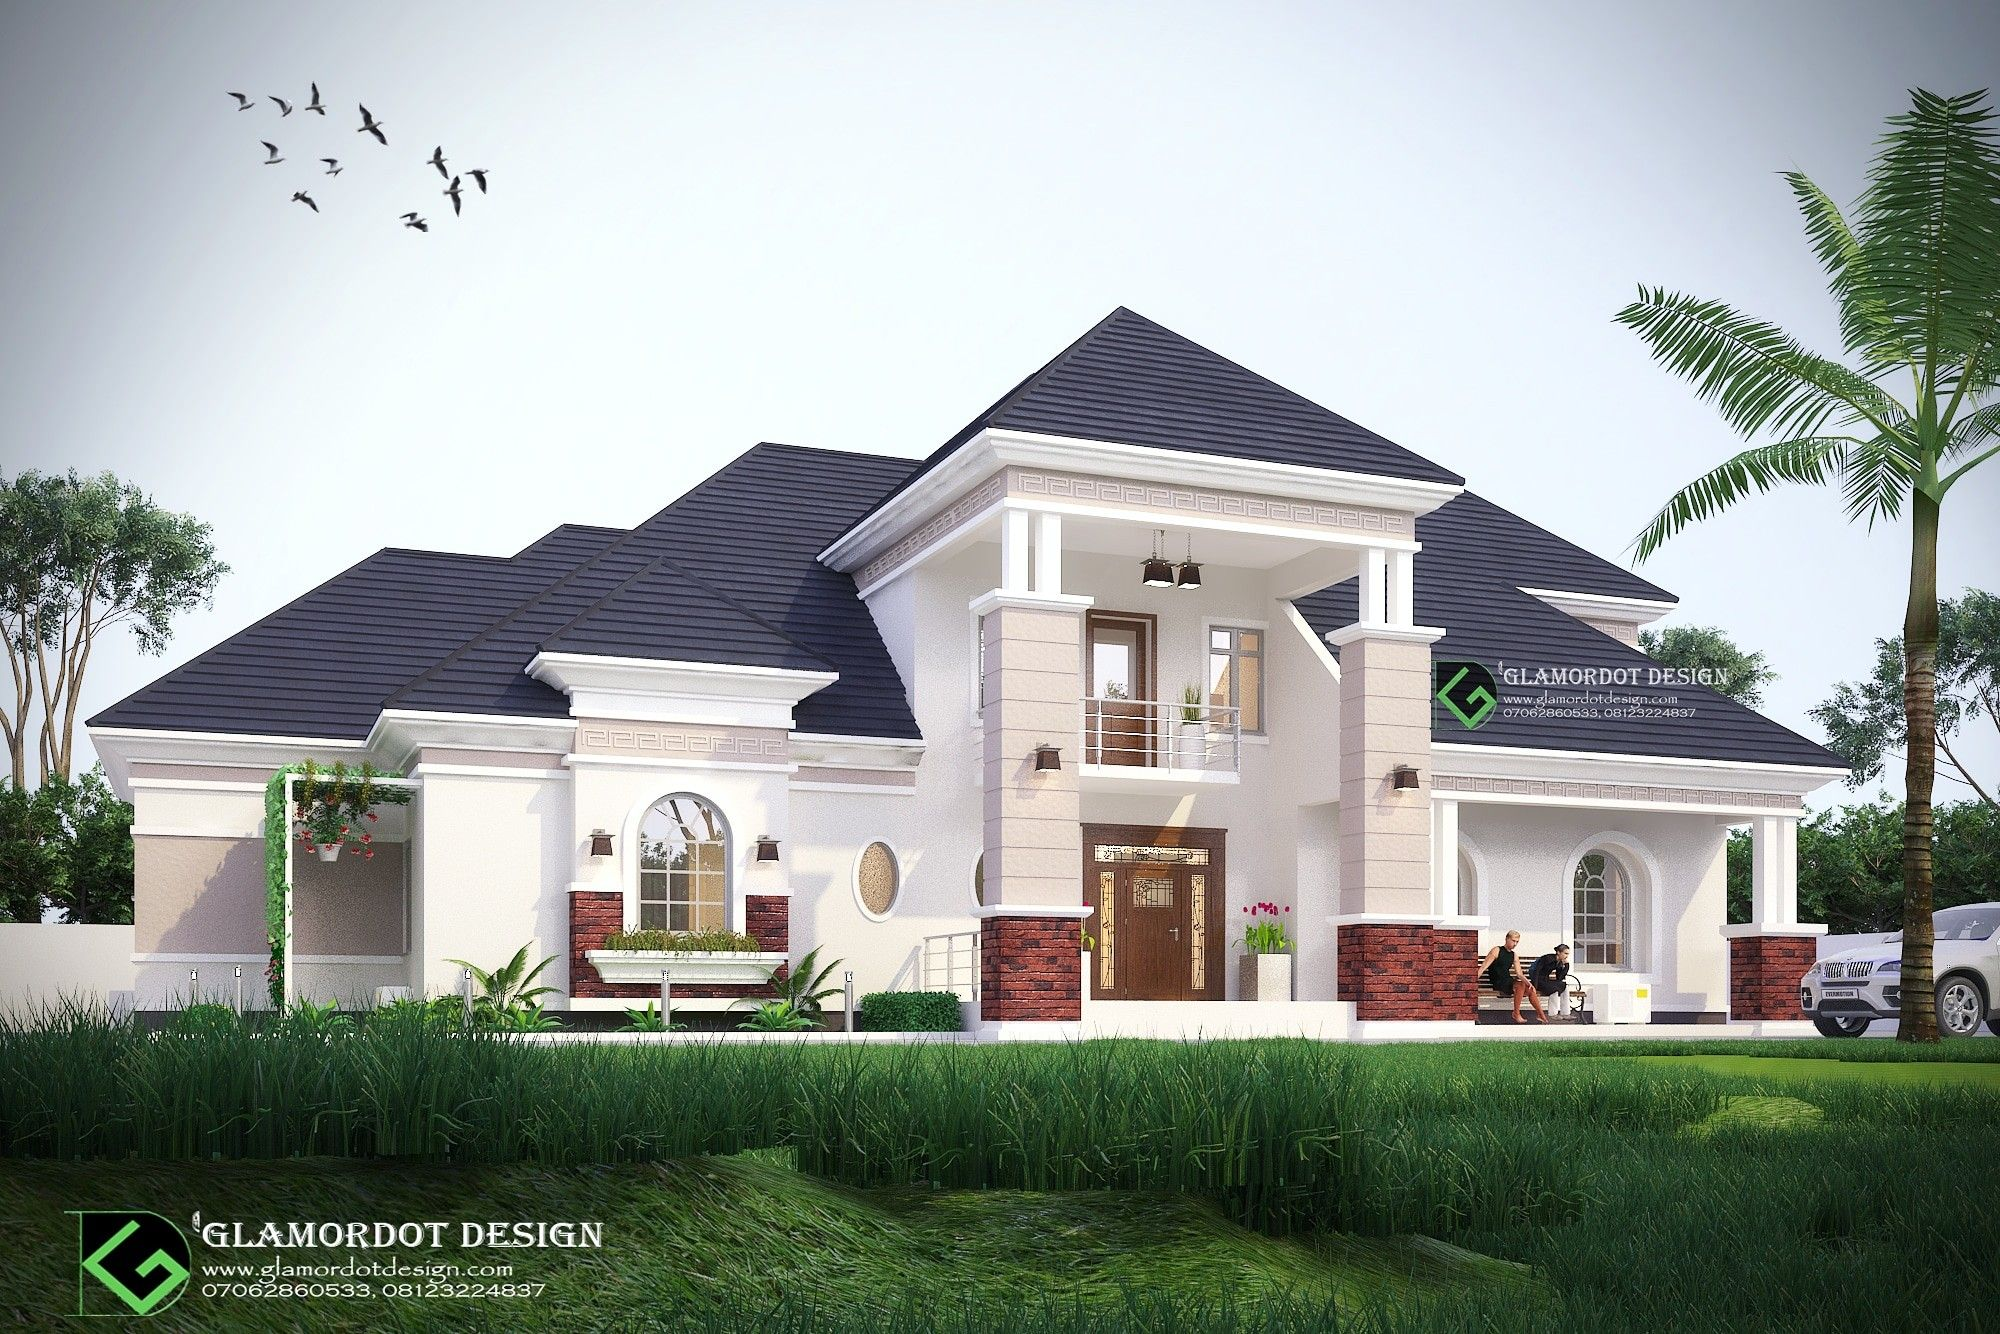 Modified architectural design of a proposed 5 bedroom bungalow with pent house abuja nigeria building area 290sqm